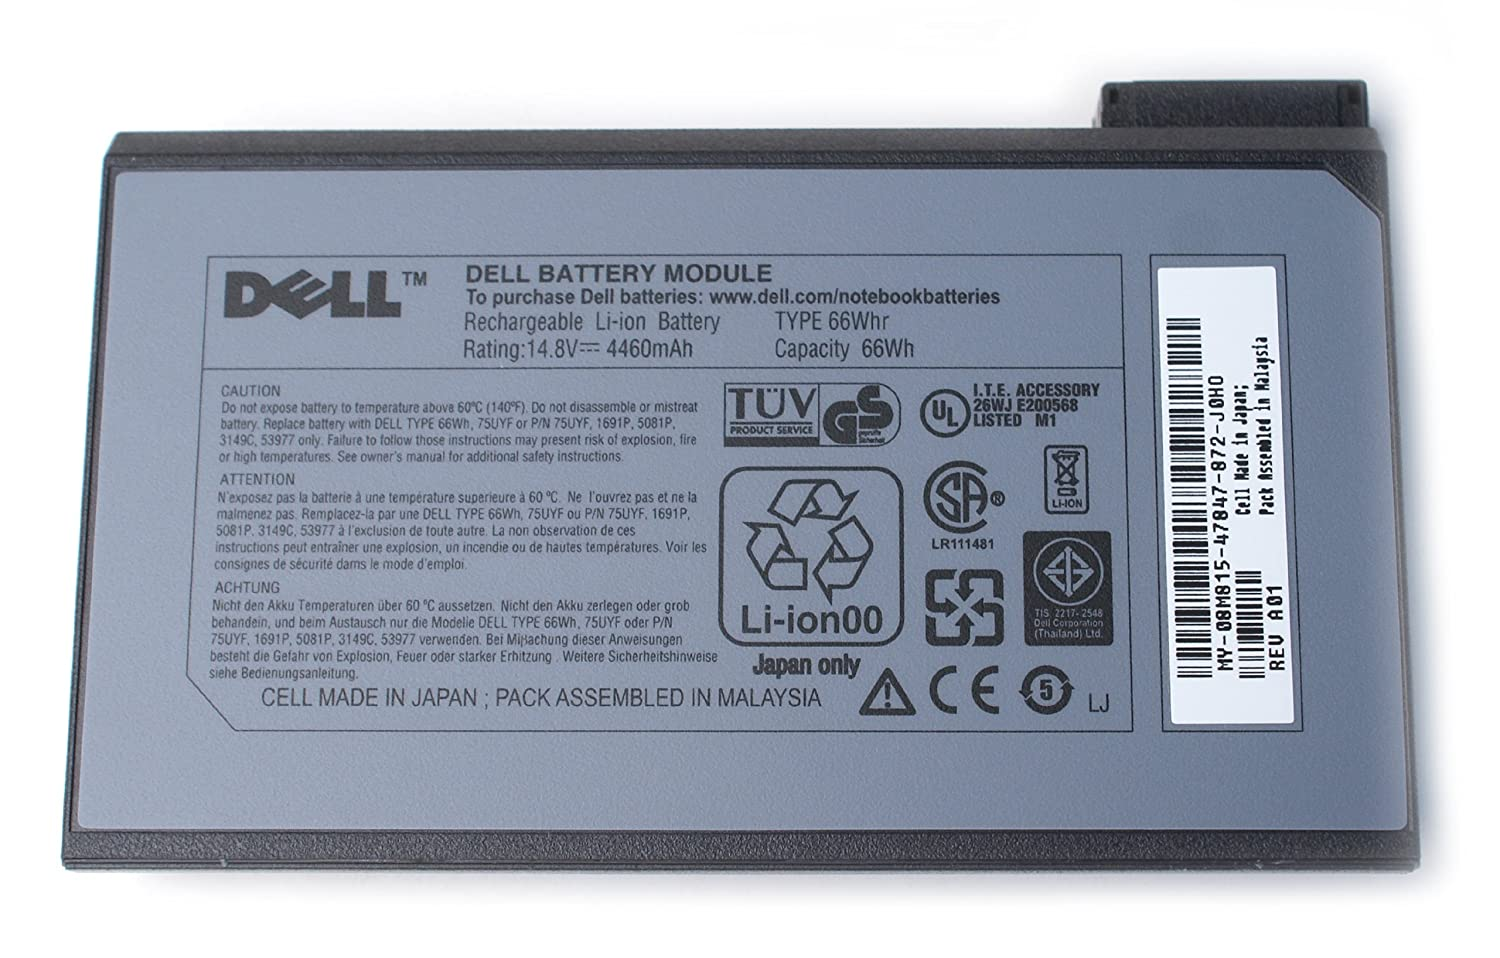 Dell 8m815 Inspiron 2500 Rechargeable Li Ion 148v Type 66whr 8 Cell Removing And Replacing Parts Latitude C600 C500 Series Service Battery For Use With The Following Systems 3700 3800 4000 4100